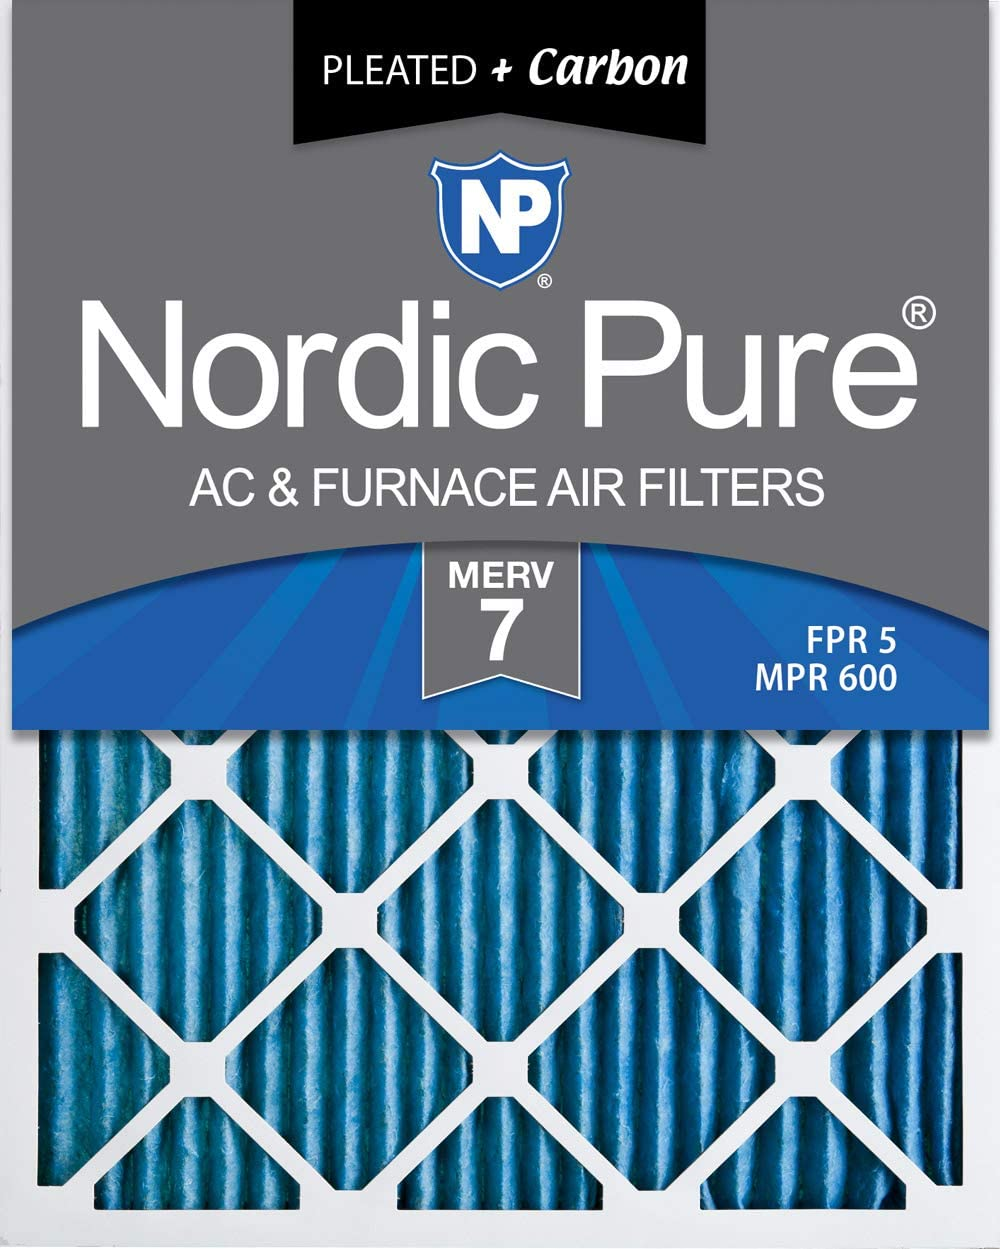 Nordic Pure 10x24x1 Exact MERV 10 Pleated AC Furnace Air Filters 2 Pack